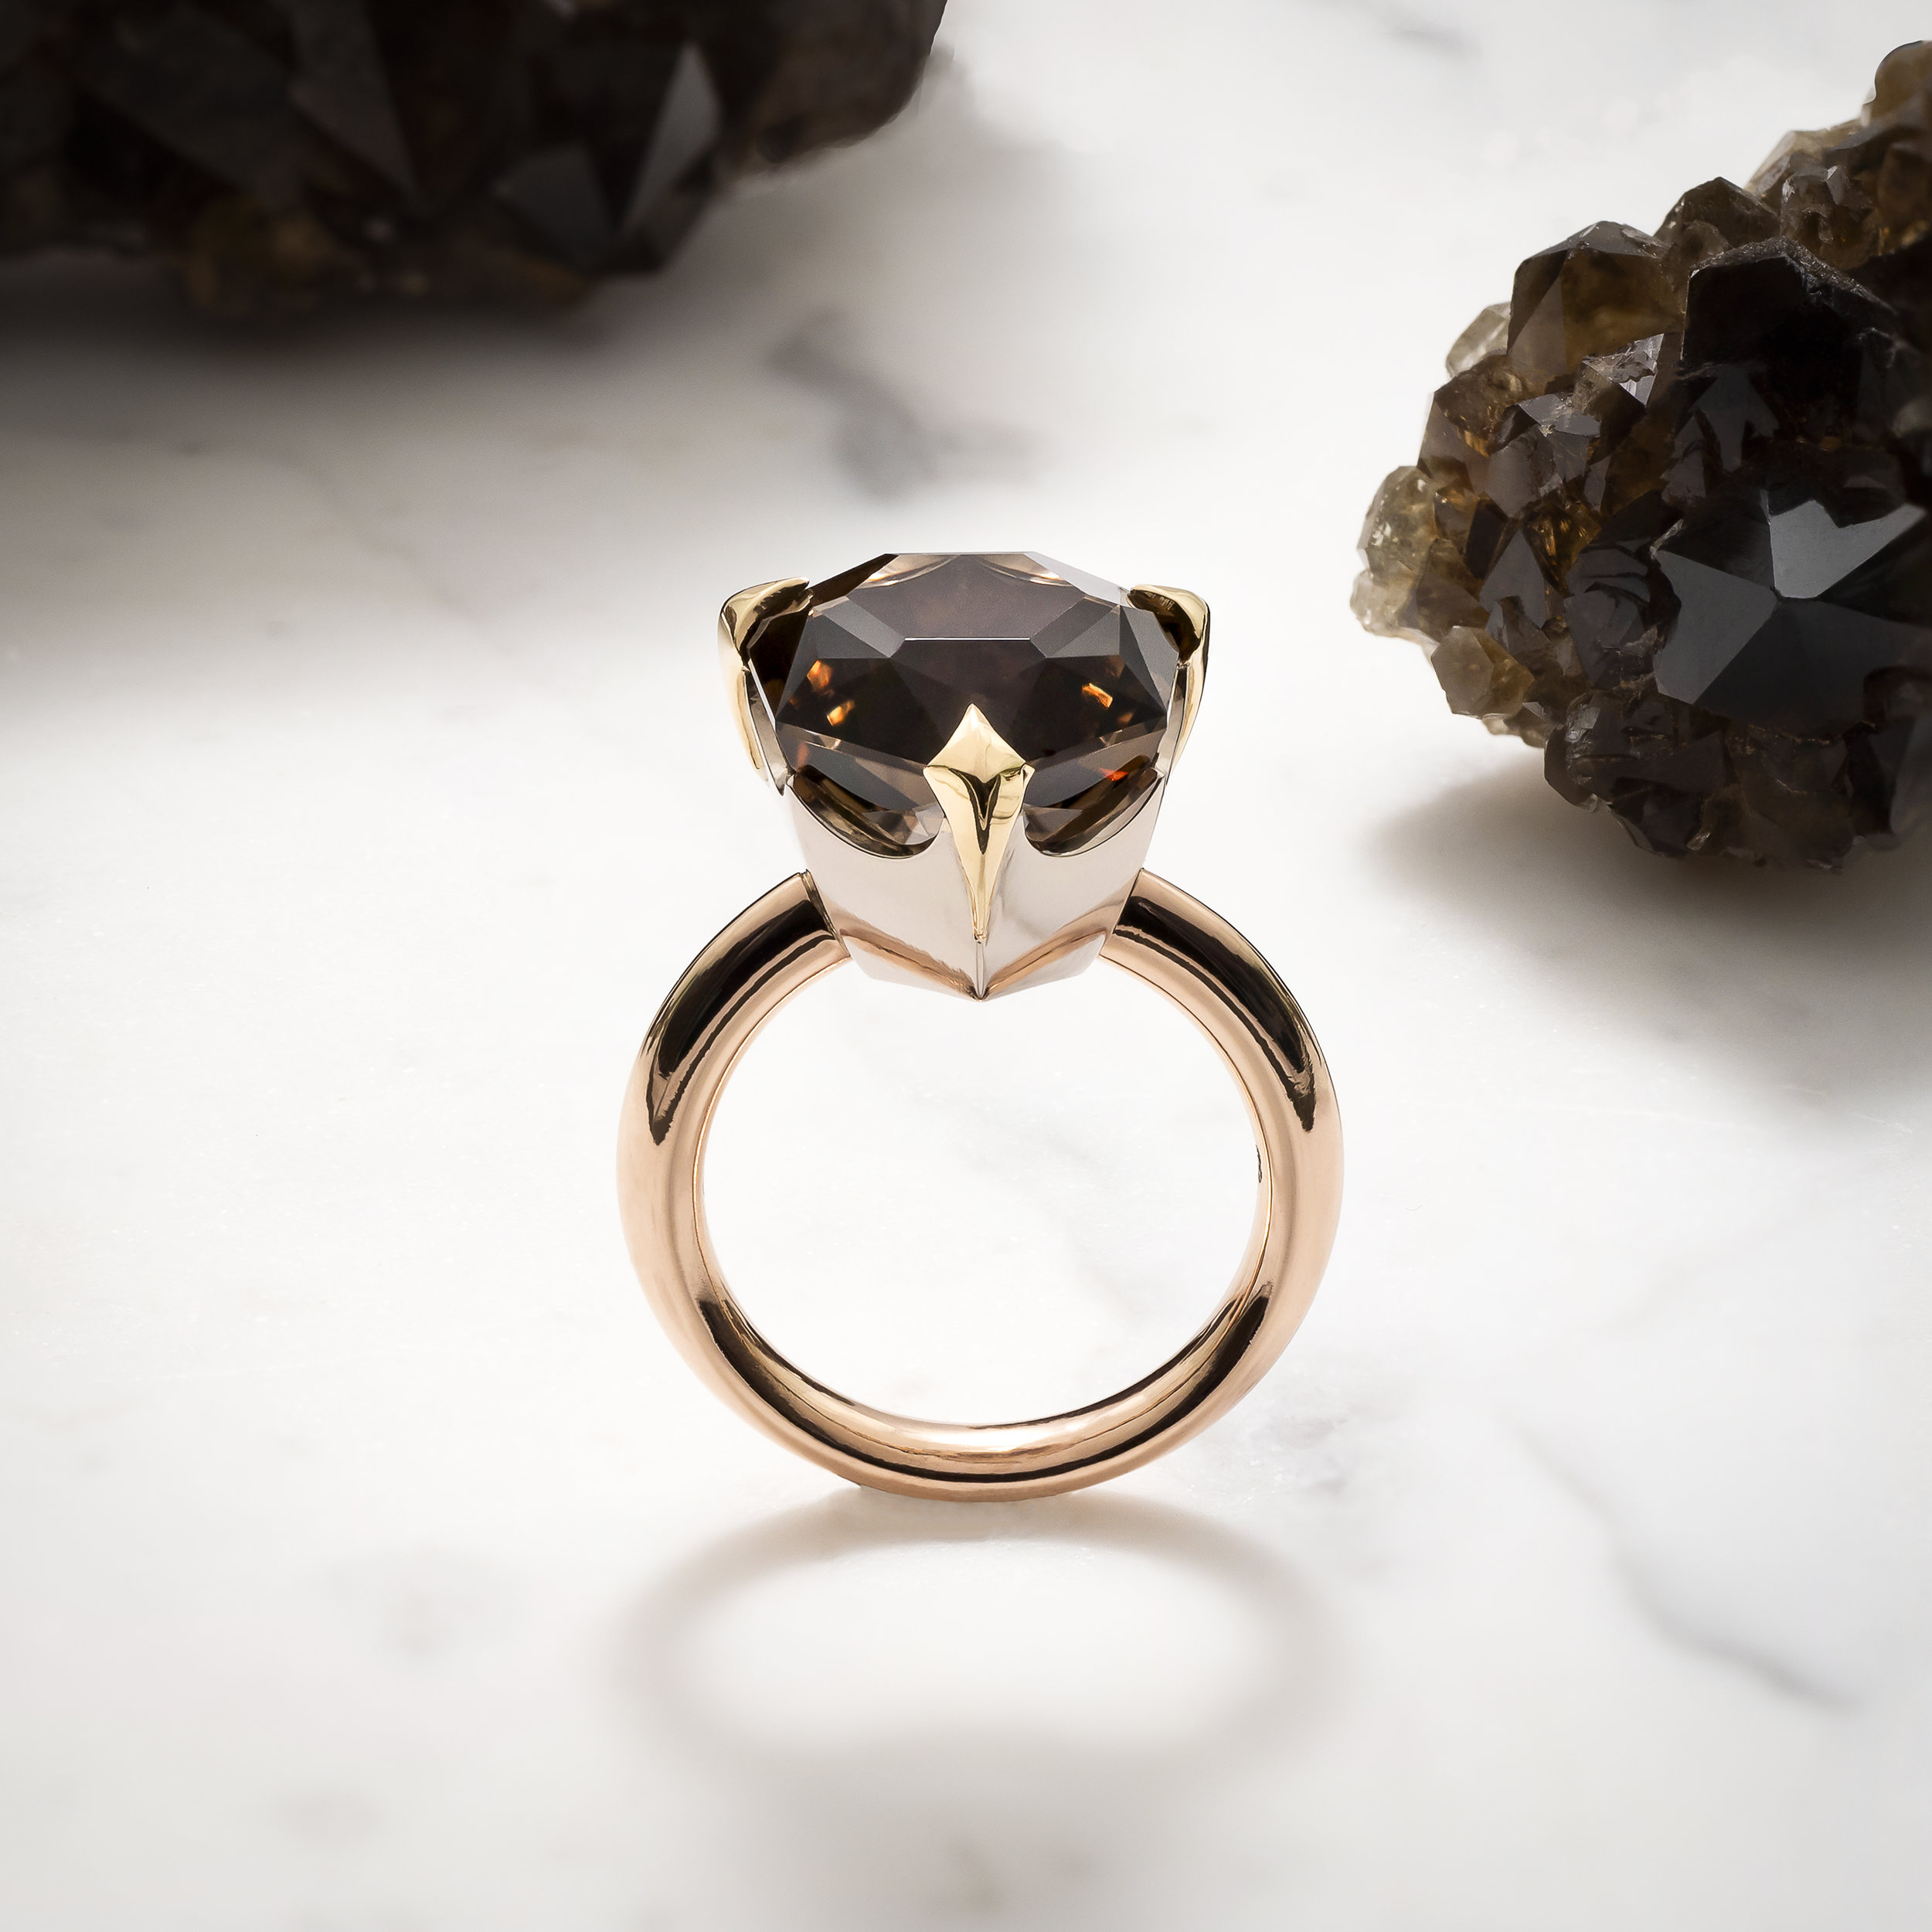 Shield thy Queen Ring   Smokey Quartz (8.60cts) from O'Briens Creek in Queensland set in 18k yellow, white and rose gold.   Inspired by my fellow badass warrior women.